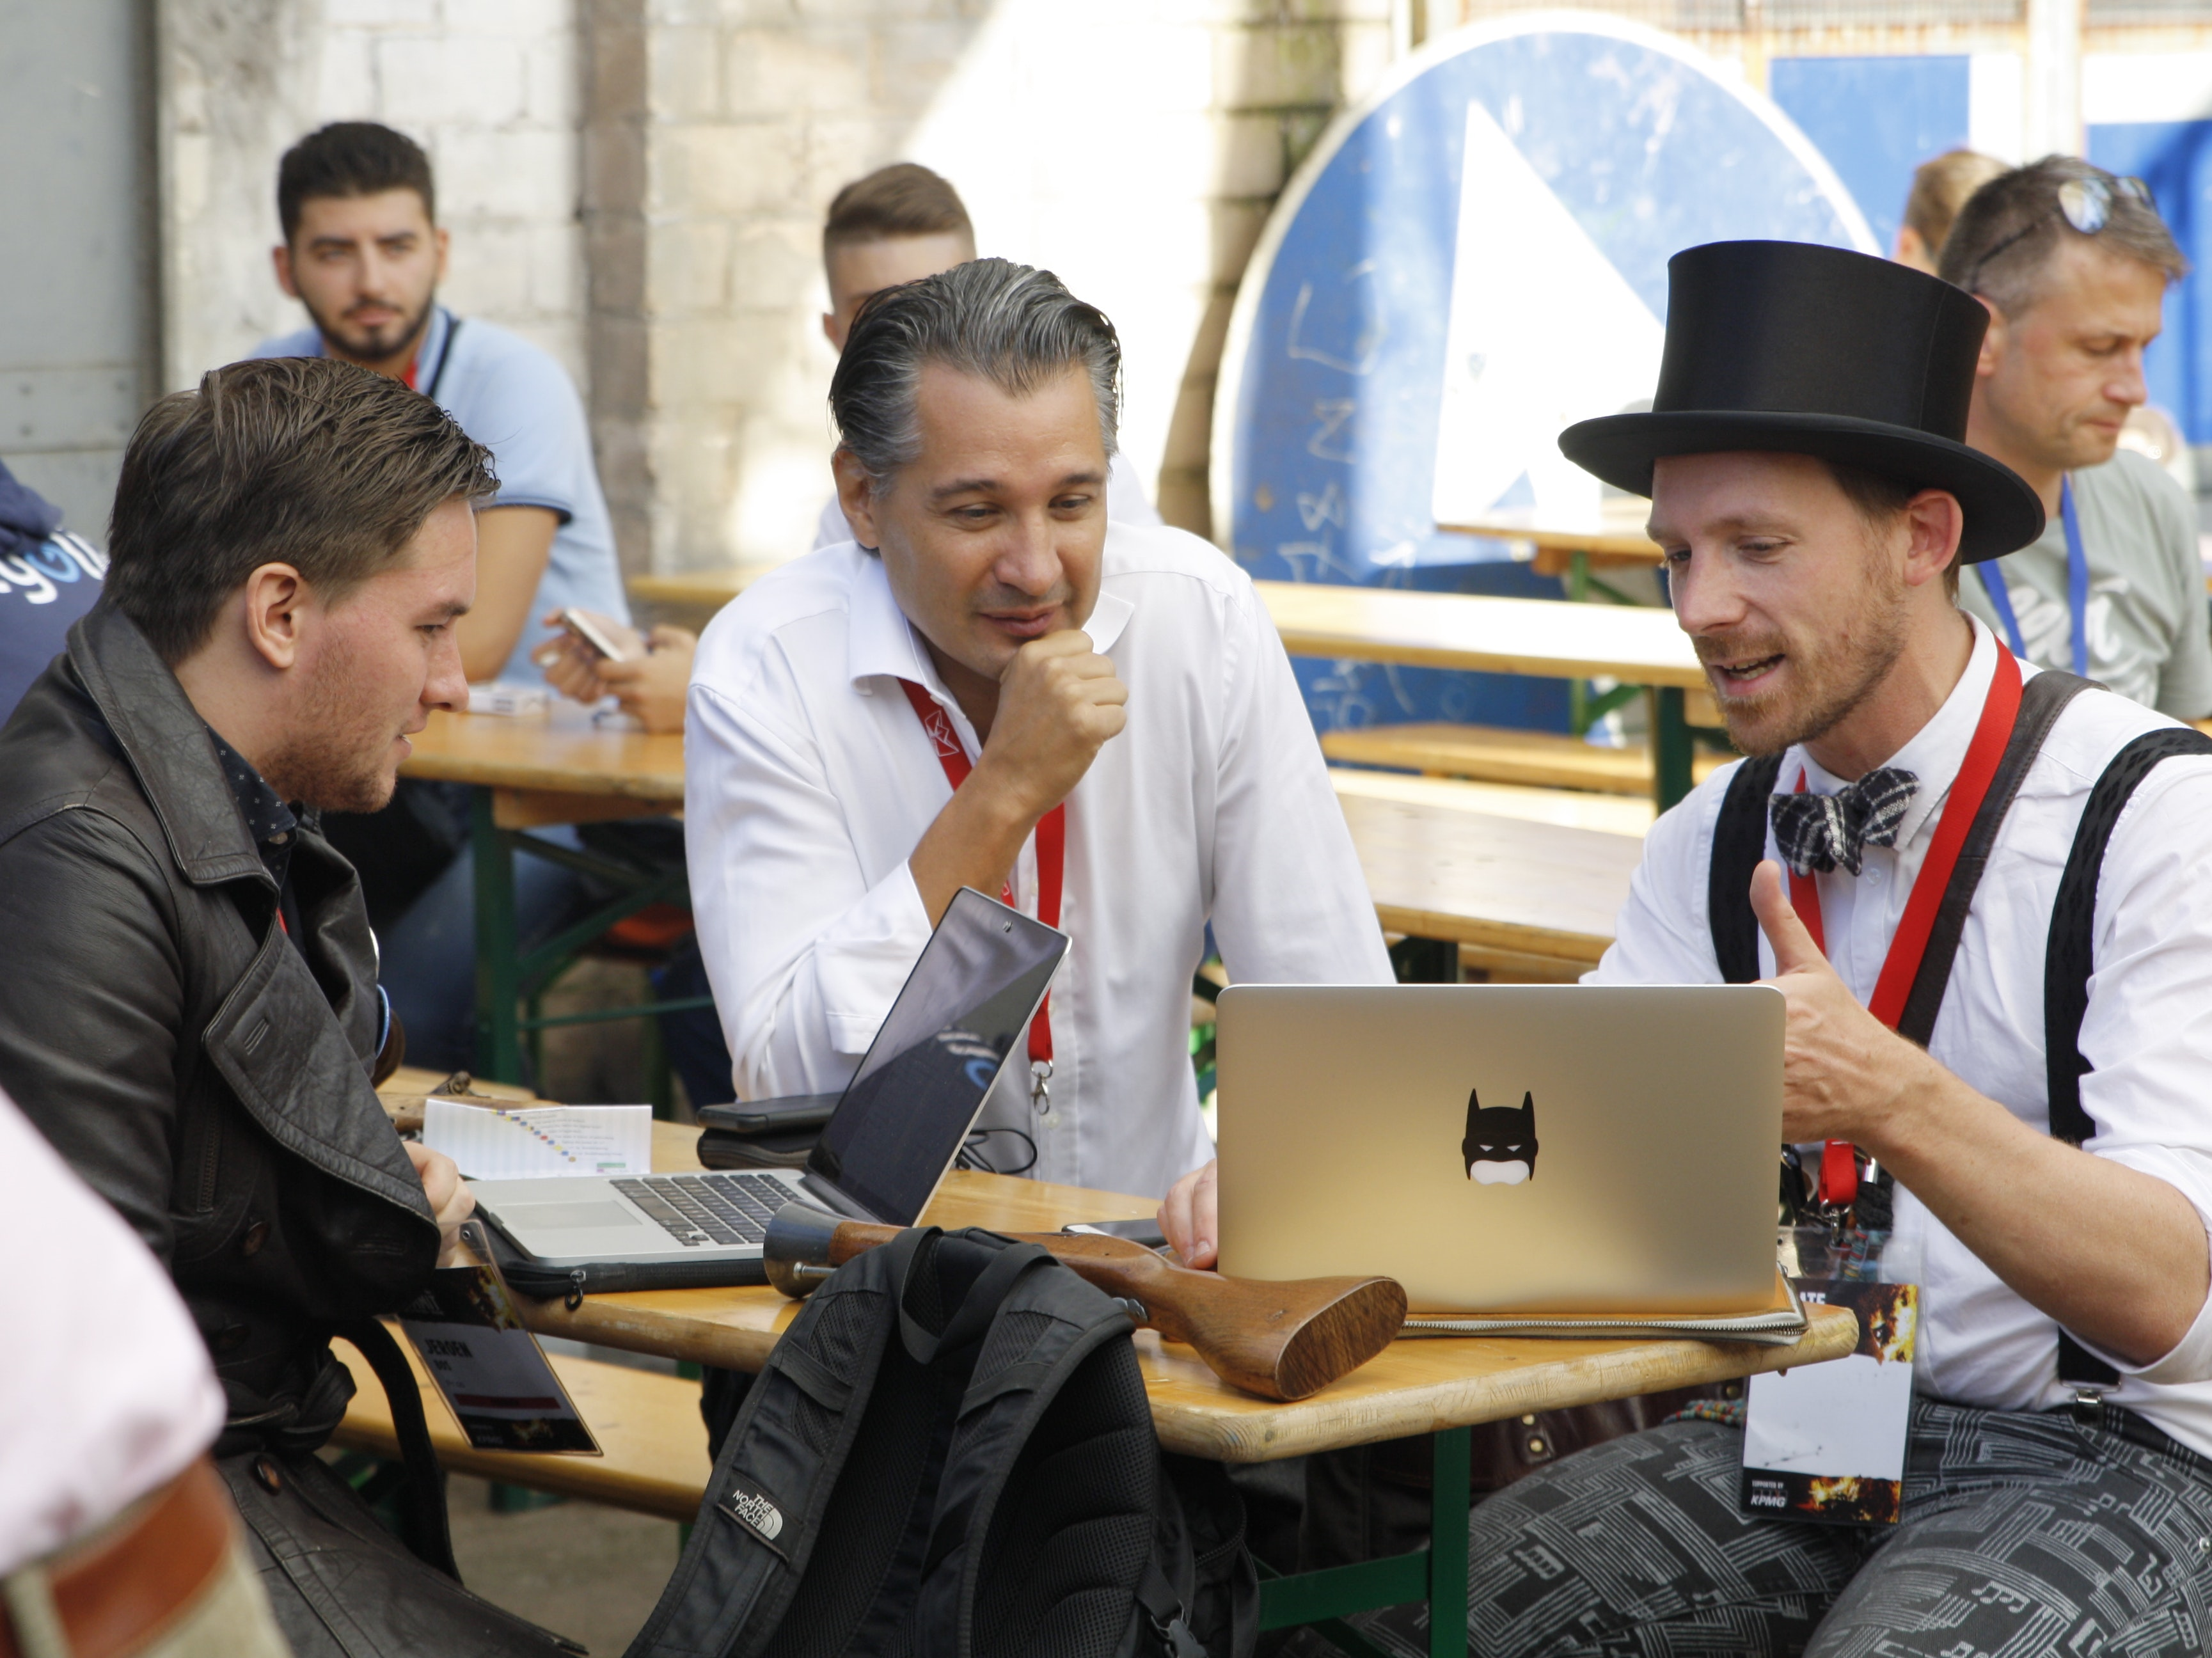 We Walked the Plank at Europe's Craziest Tech Conference